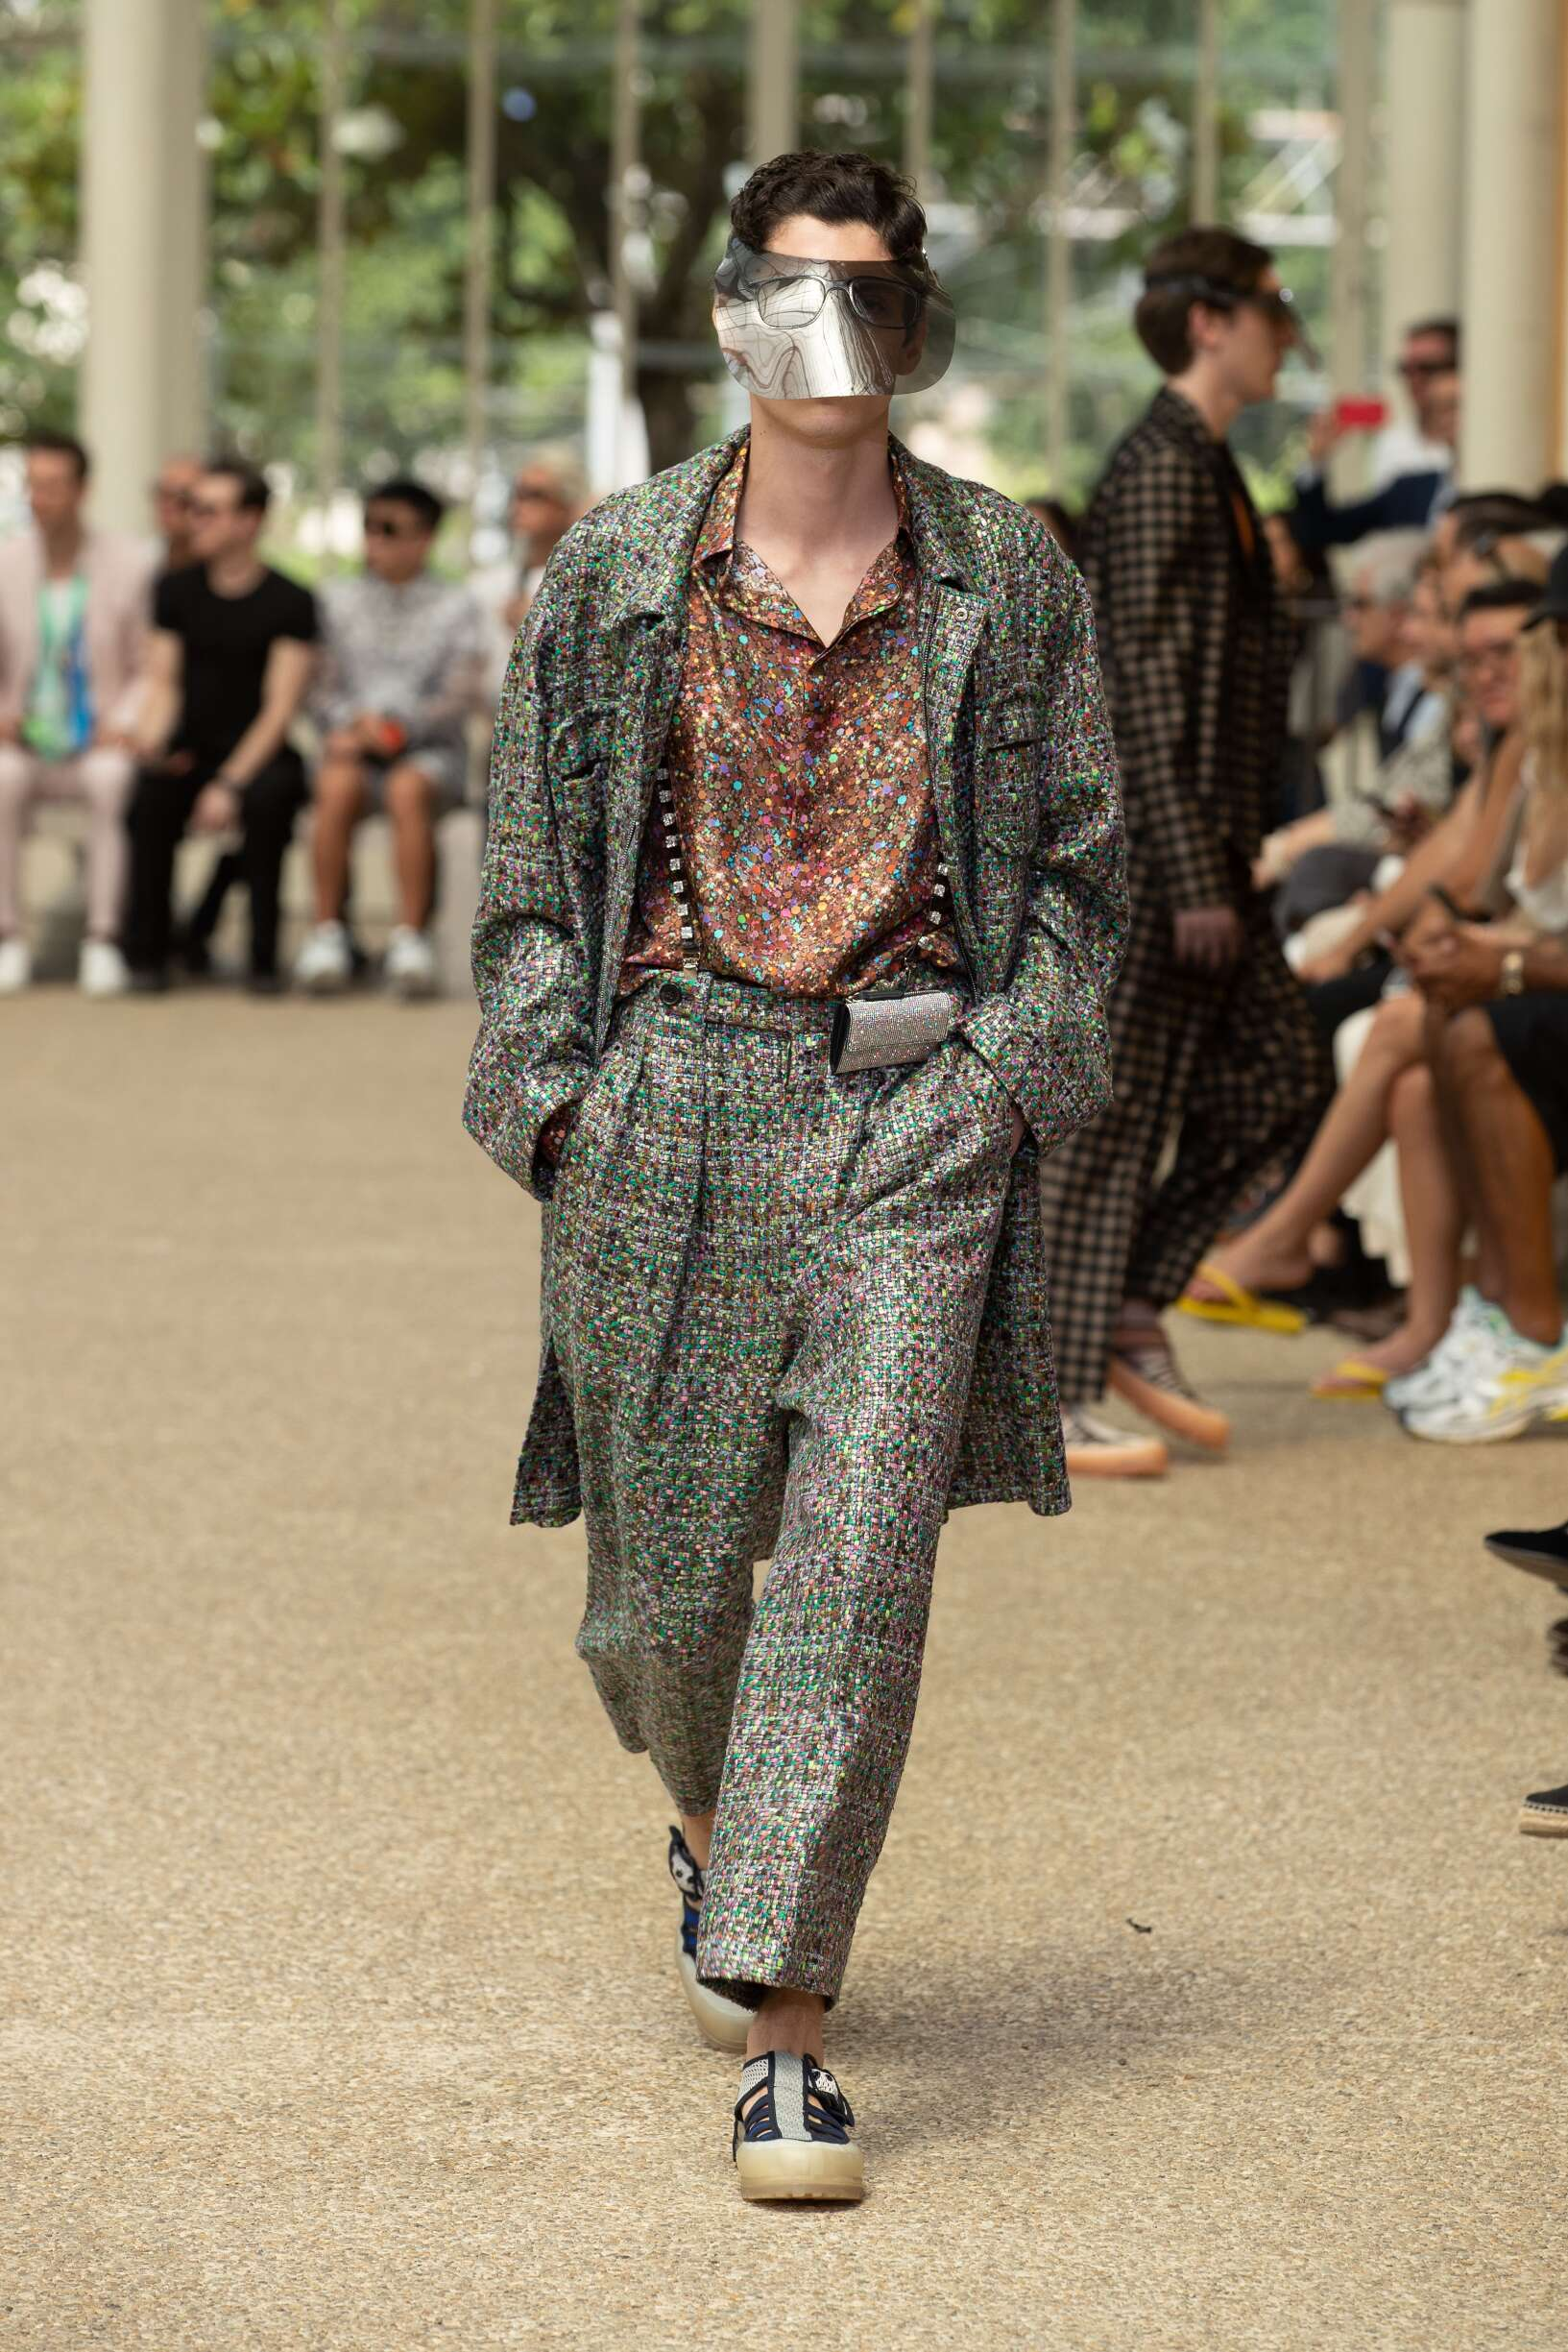 Runway Marco De vincenzo Spring Summer 2020 Men's Collection Pitti Immagine